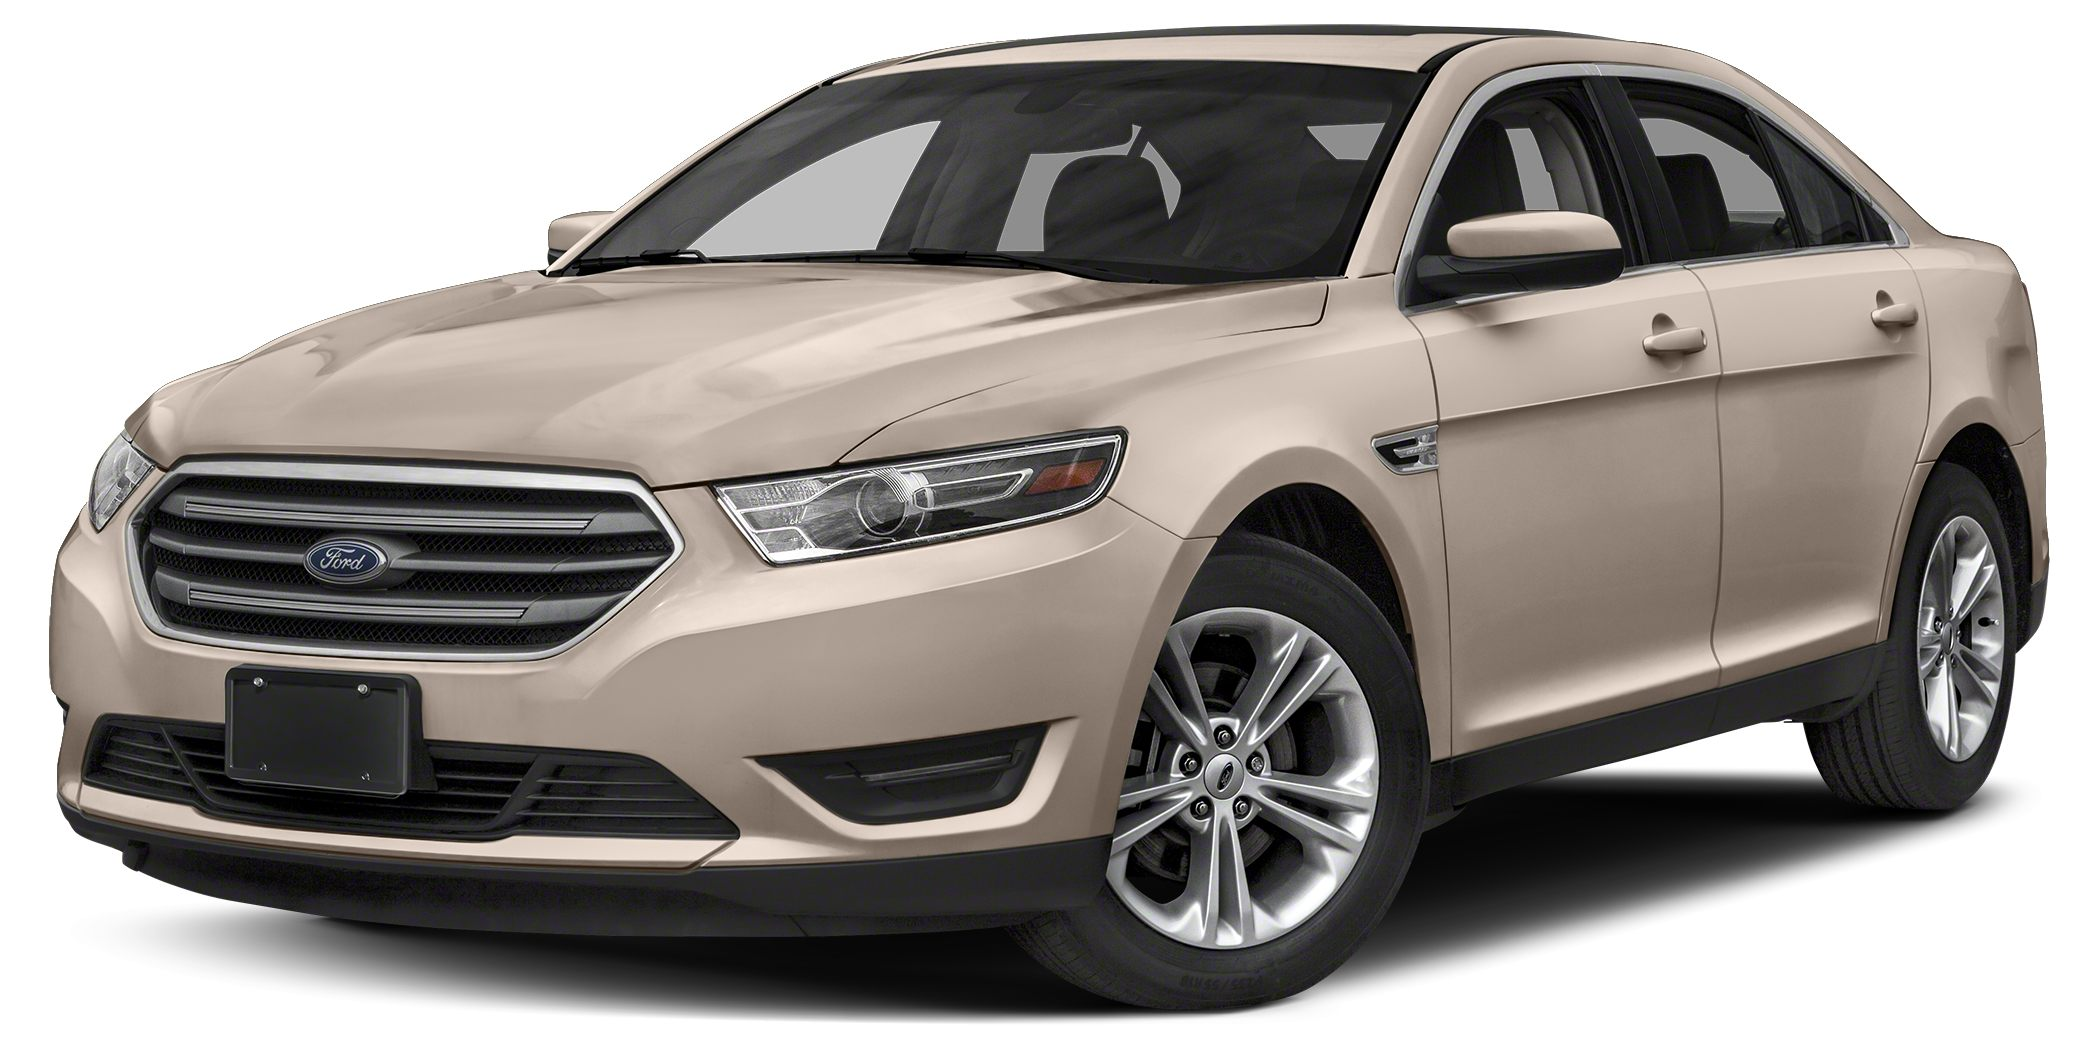 2018 Ford Taurus Limited 2018 Ford Taurus Limited 20 Polished Aluminum Wheels Active Park Assist